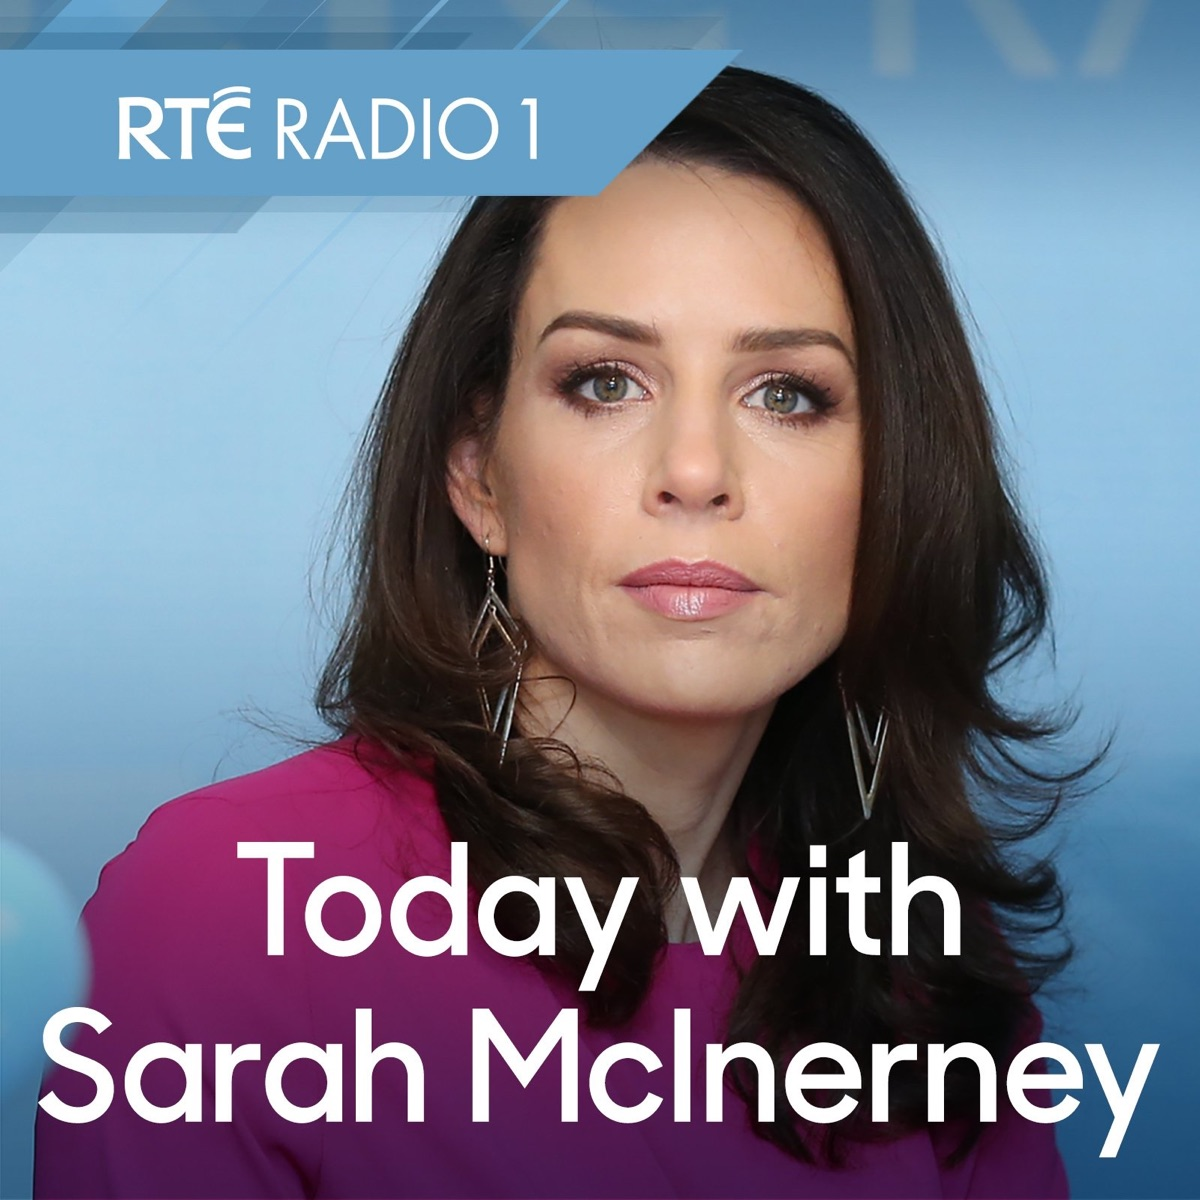 Today with Sarah McInerney